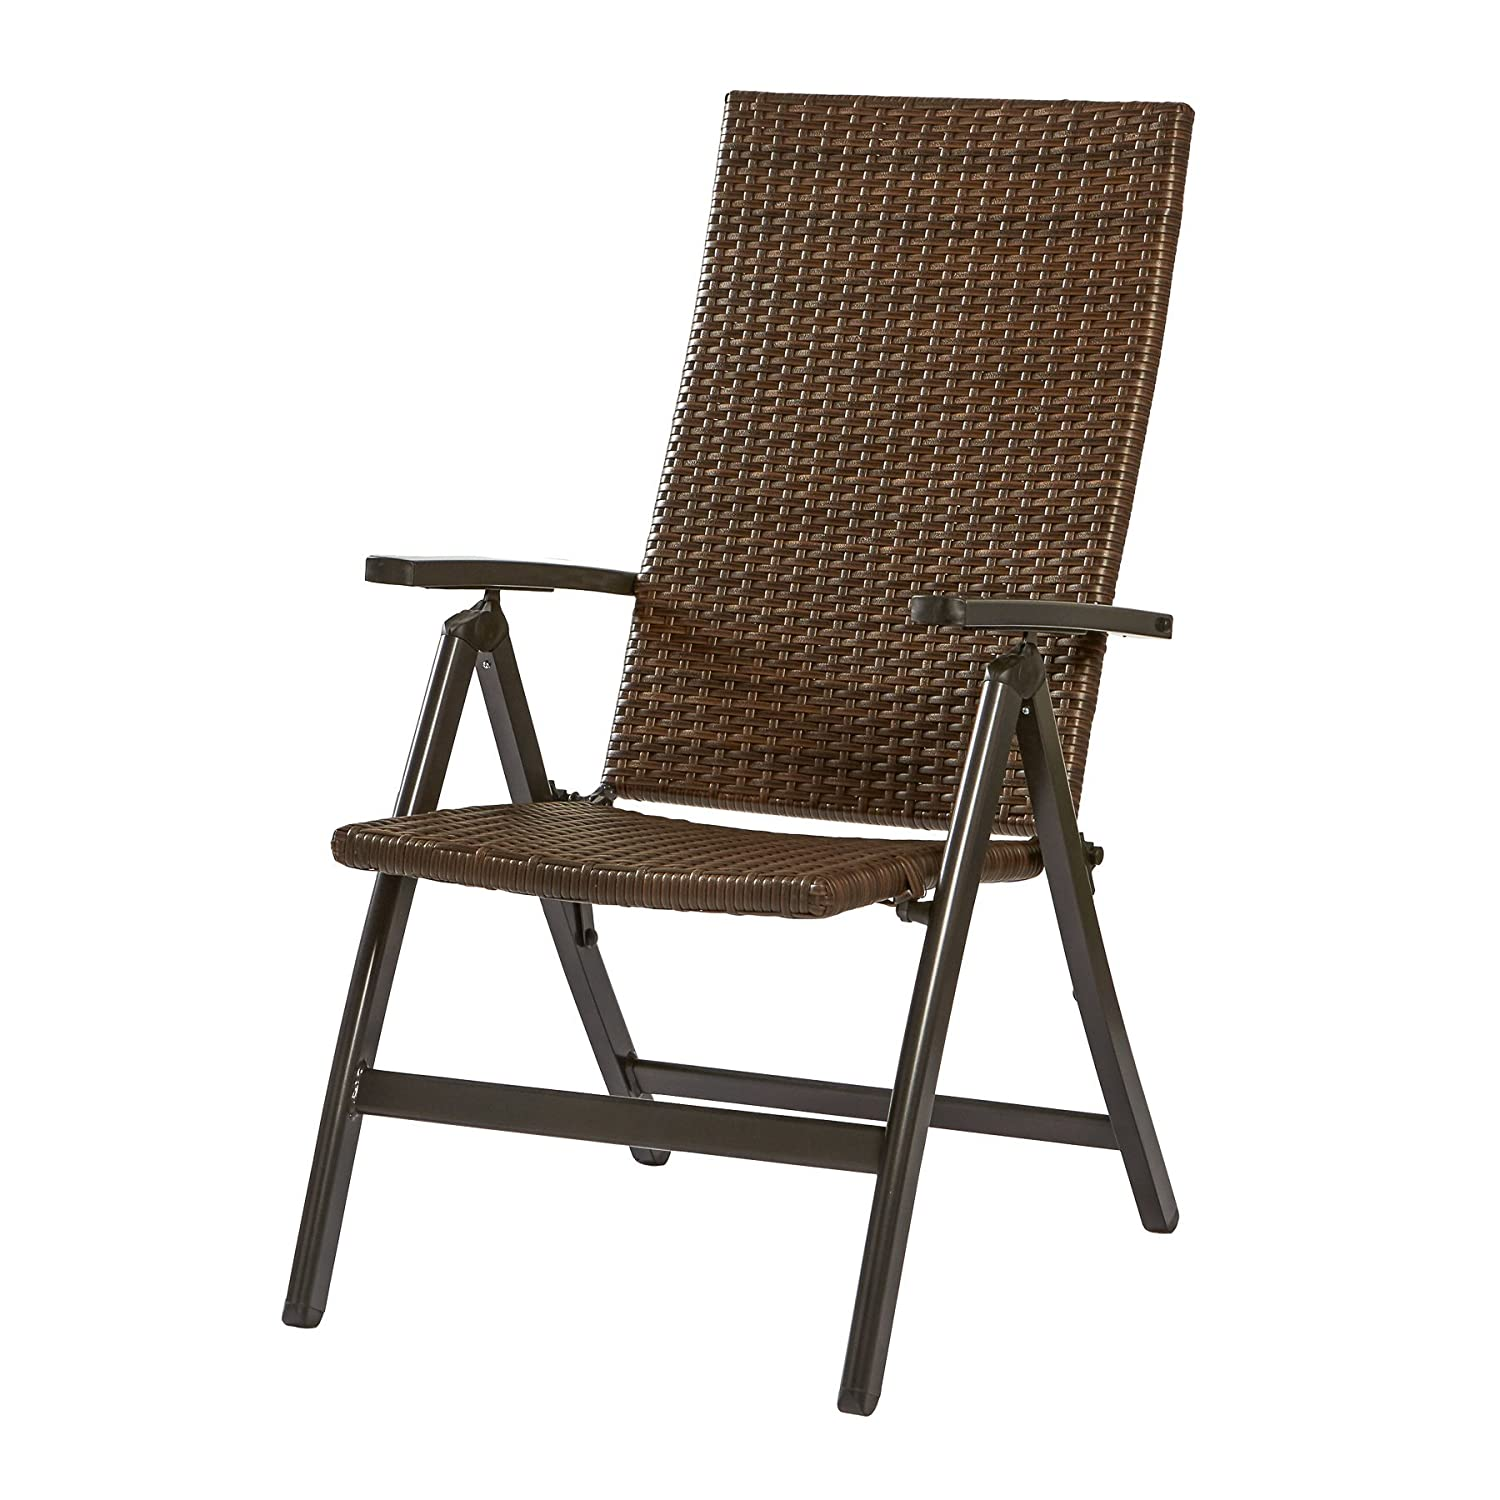 Amazon Greendale Home Fashions Hand Woven PE Wicker Outdoor